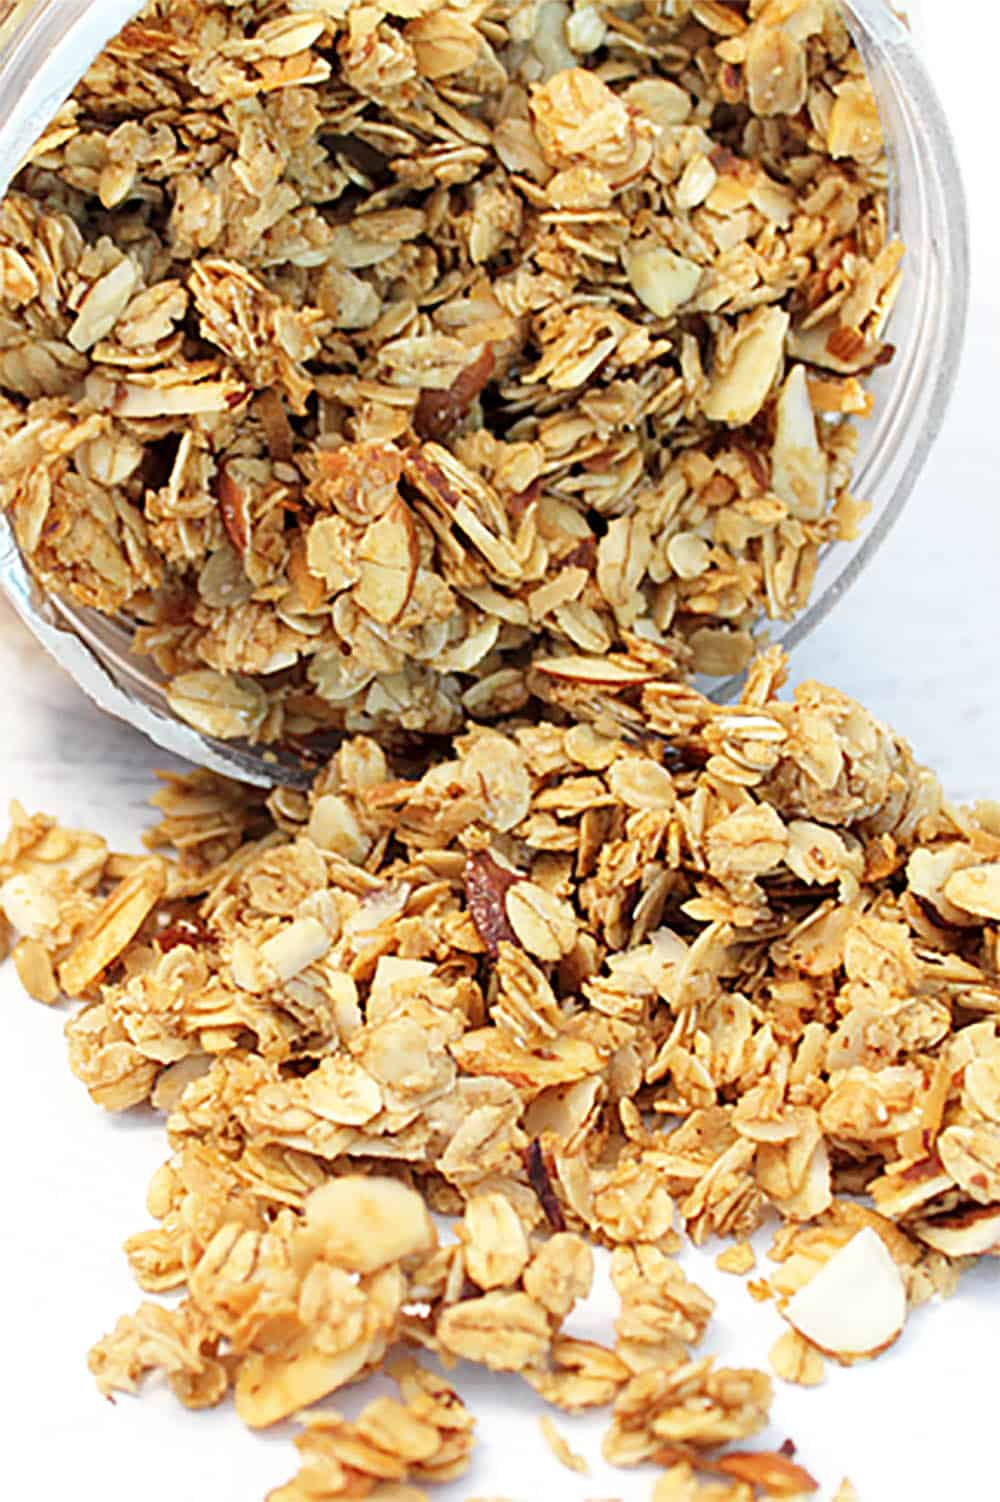 Granola spilling out of container onto white table.